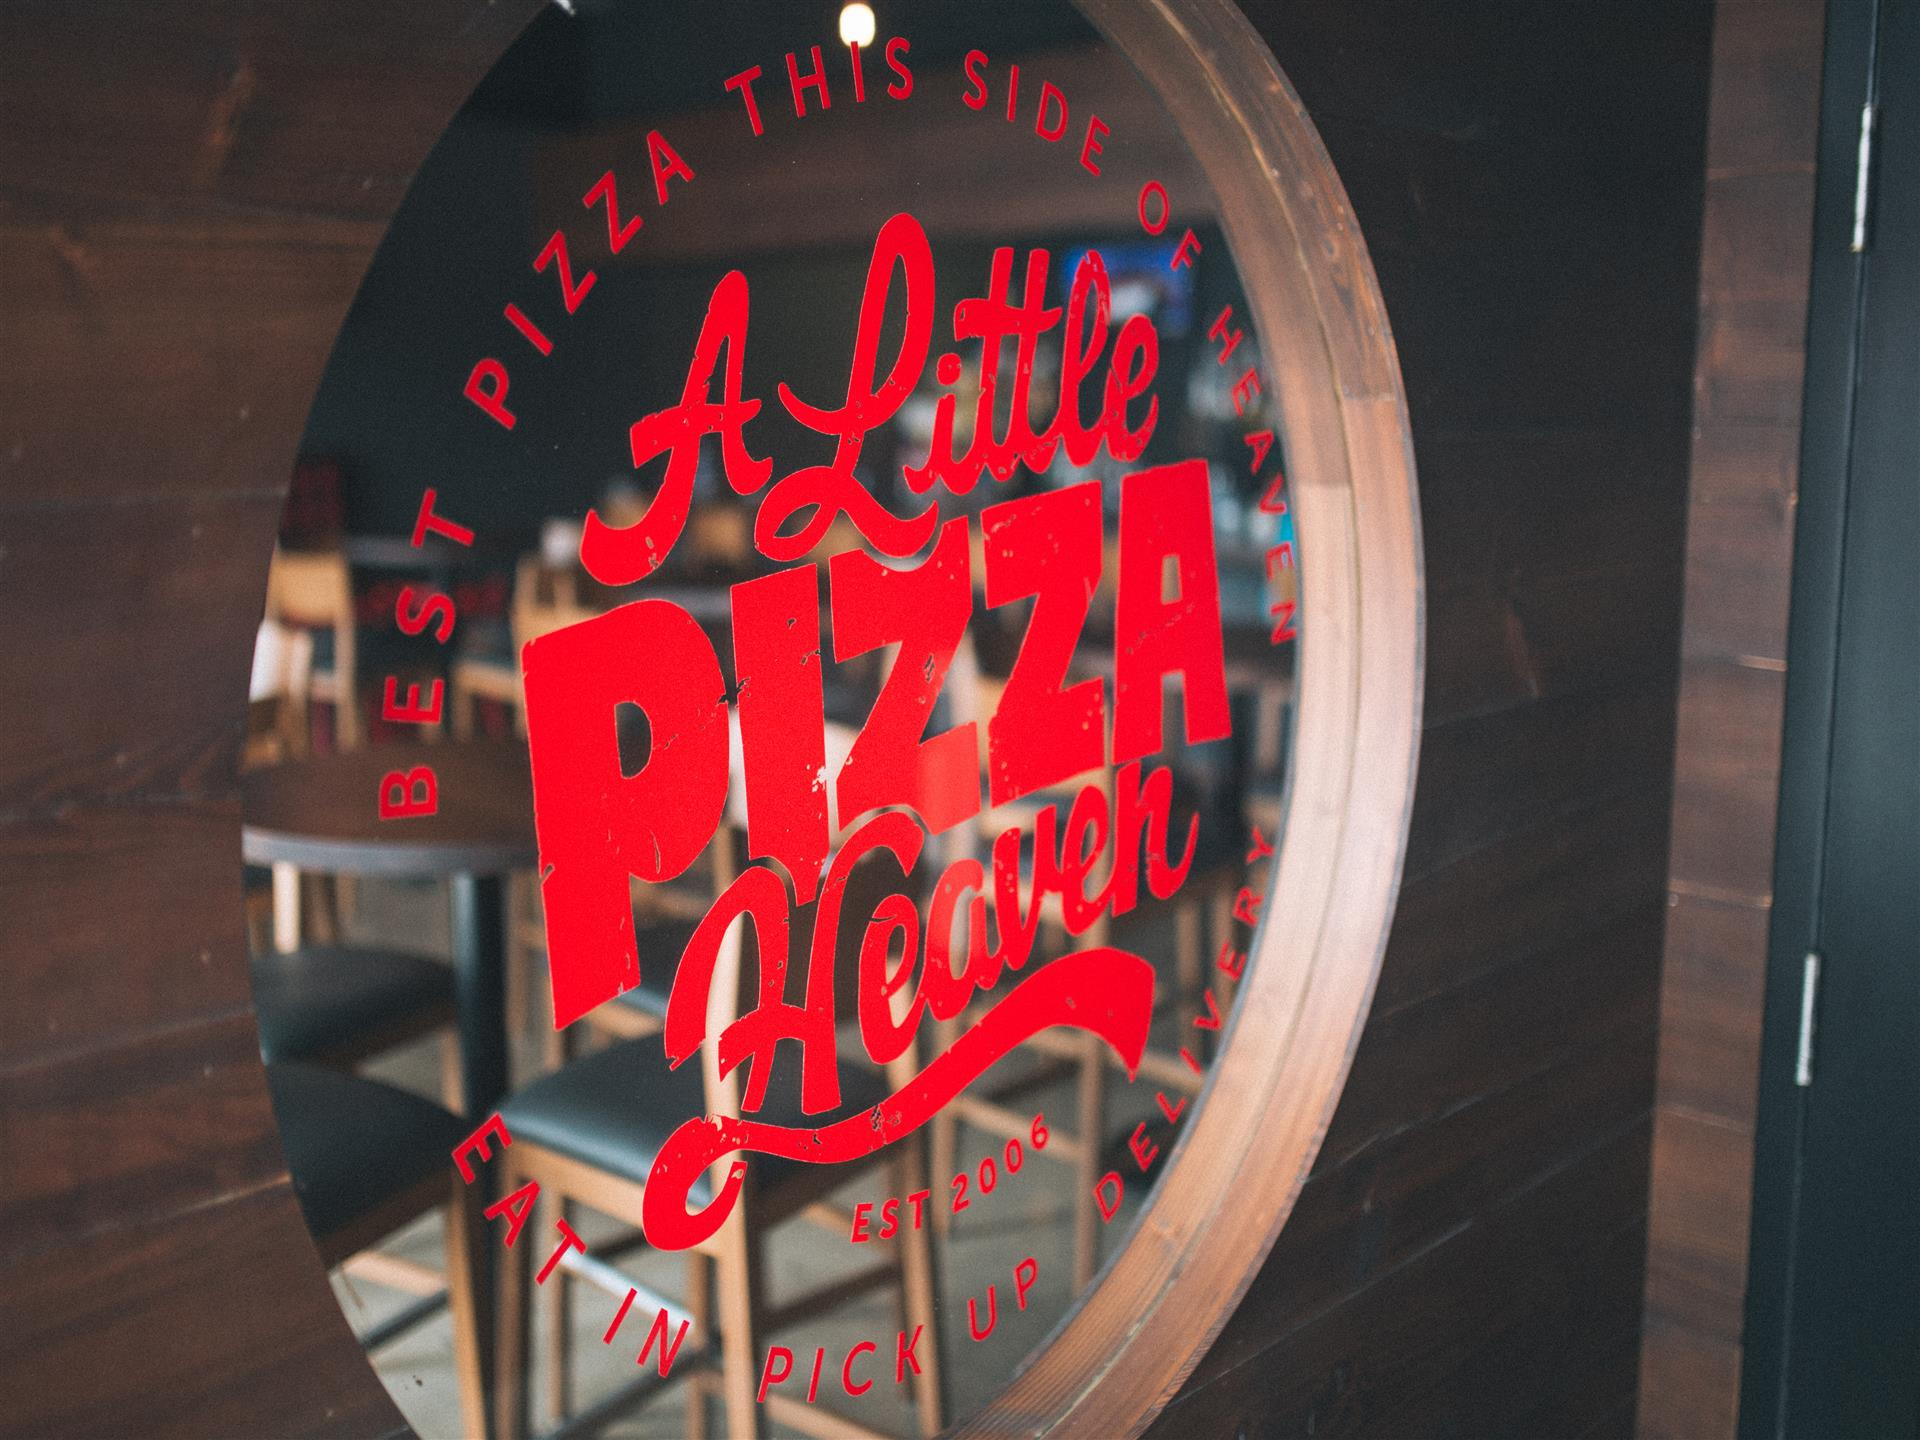 A litte pizza heaven decal sign in restaurant window